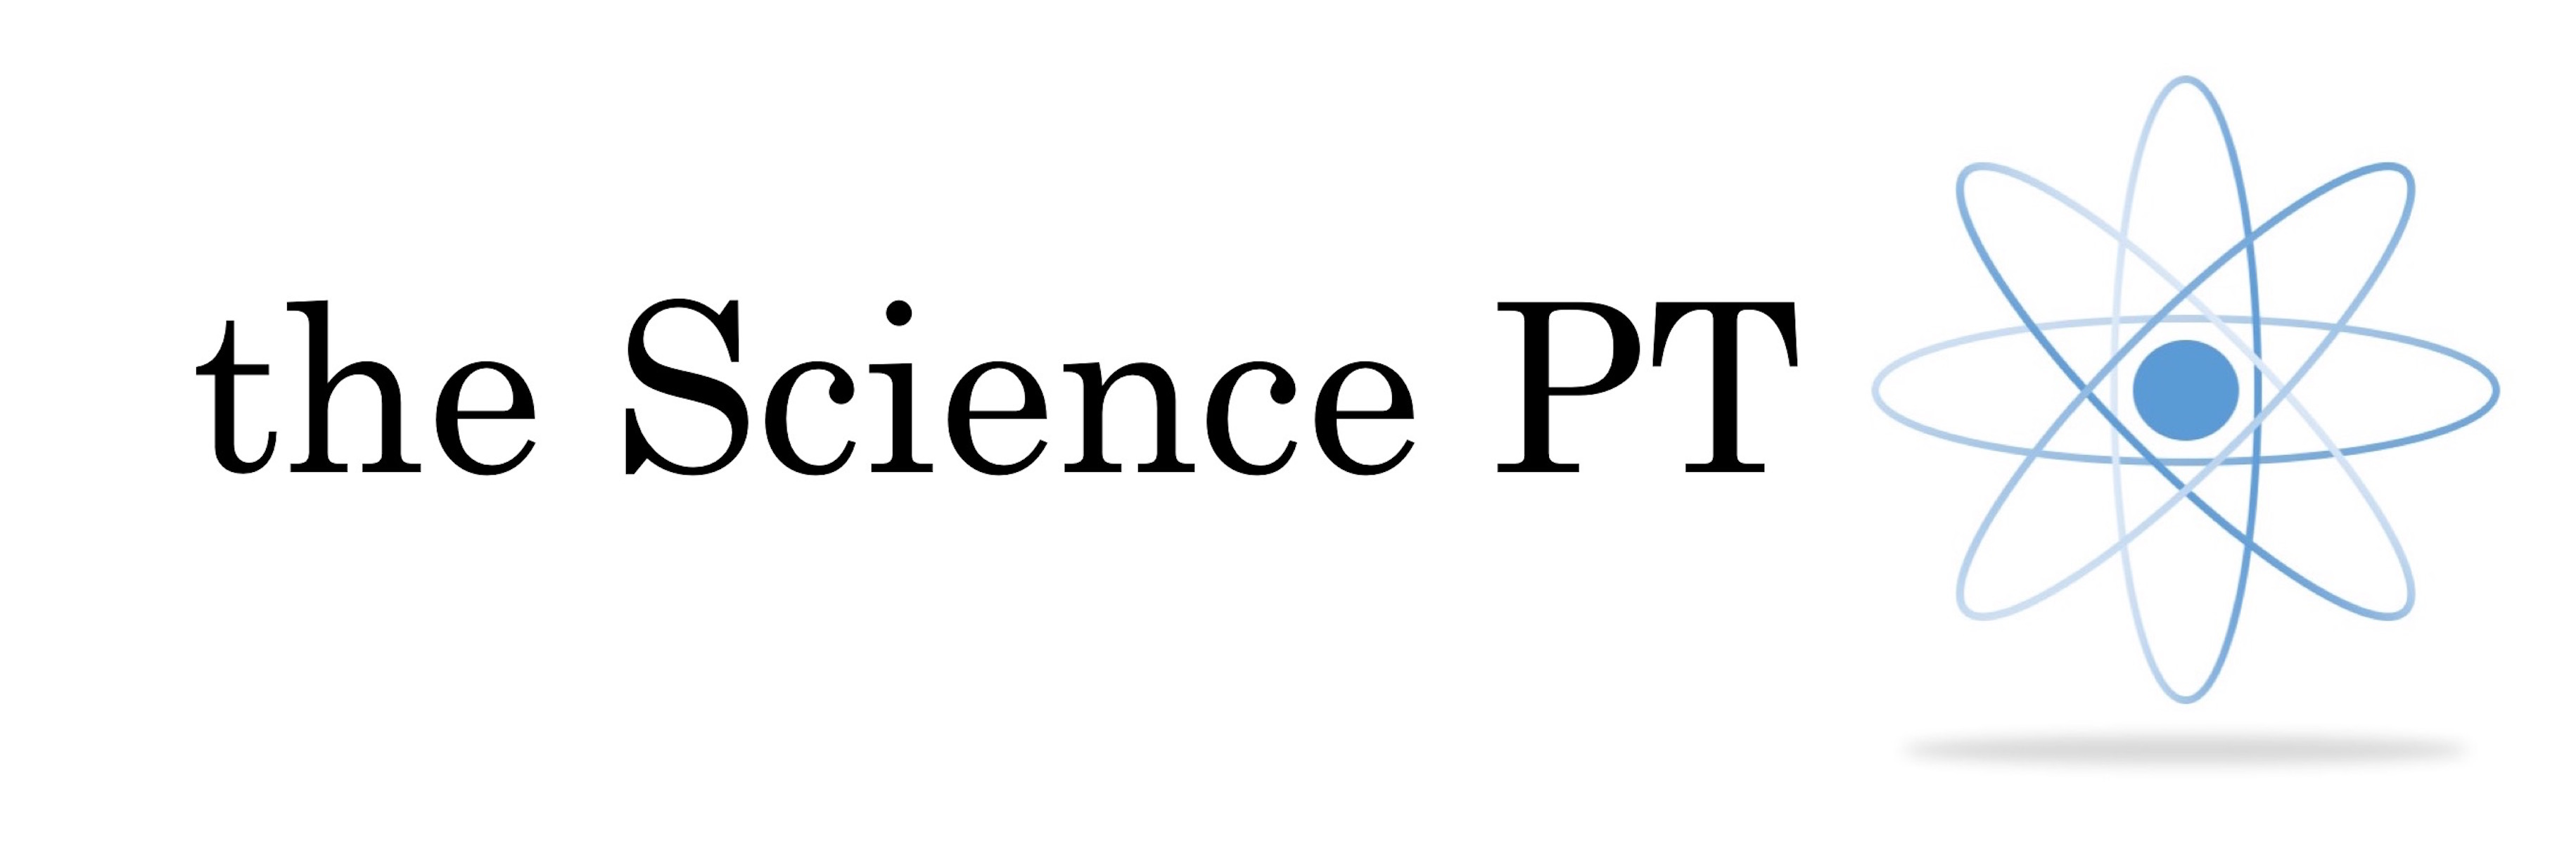 The Science PT Courses